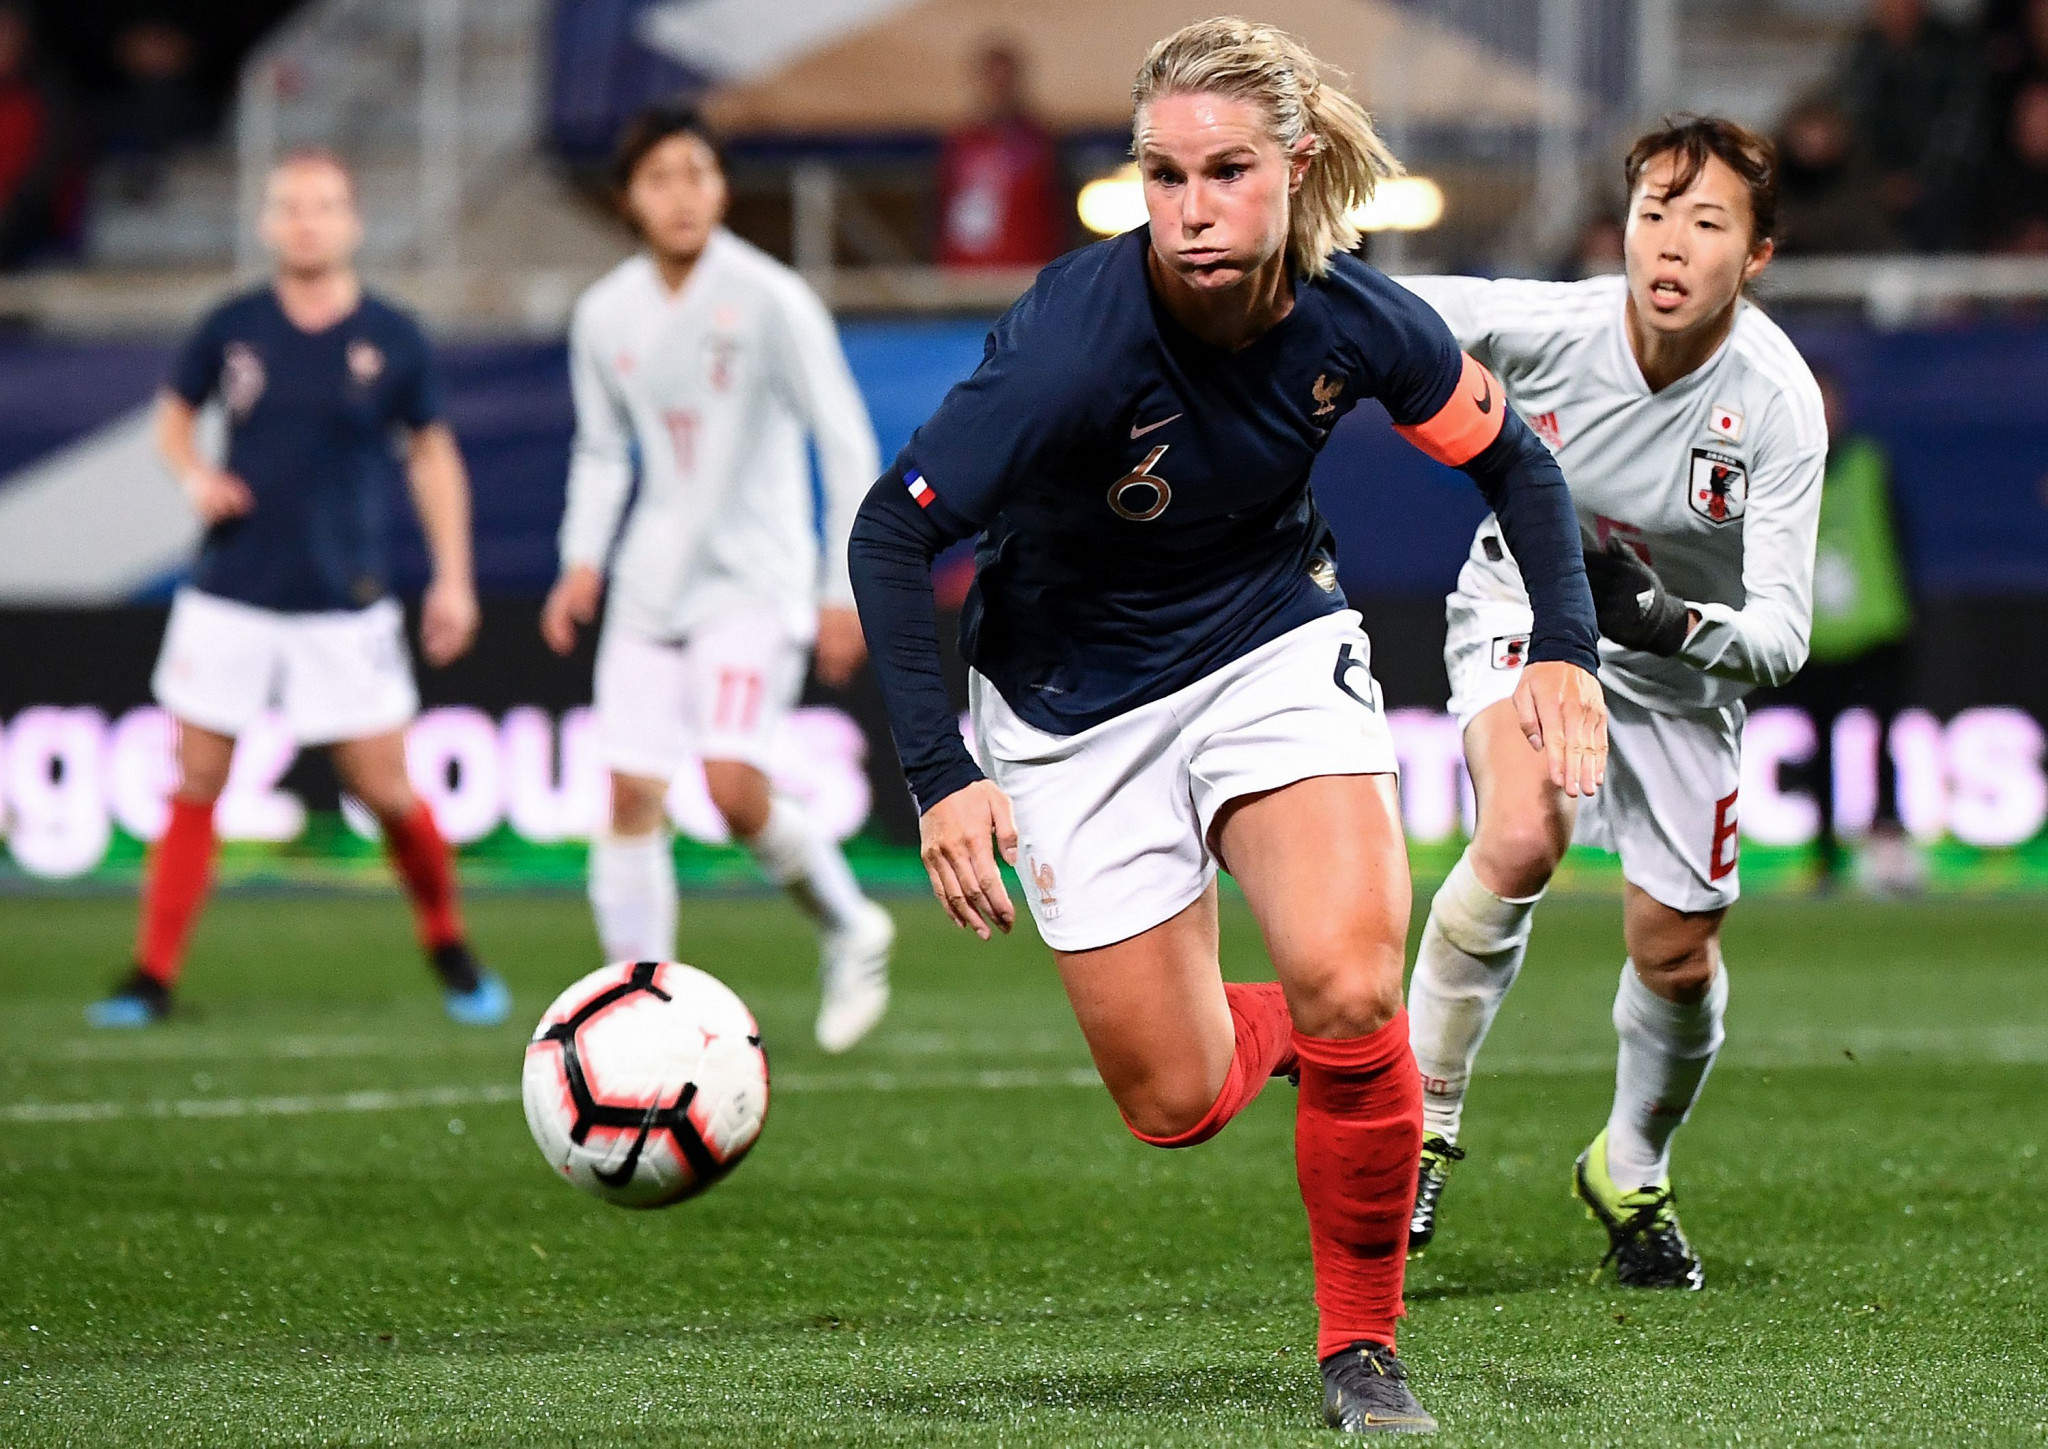 David Owen: Women's sport is on the way up – and the FIFA Women's World Cup will play its part in the rise